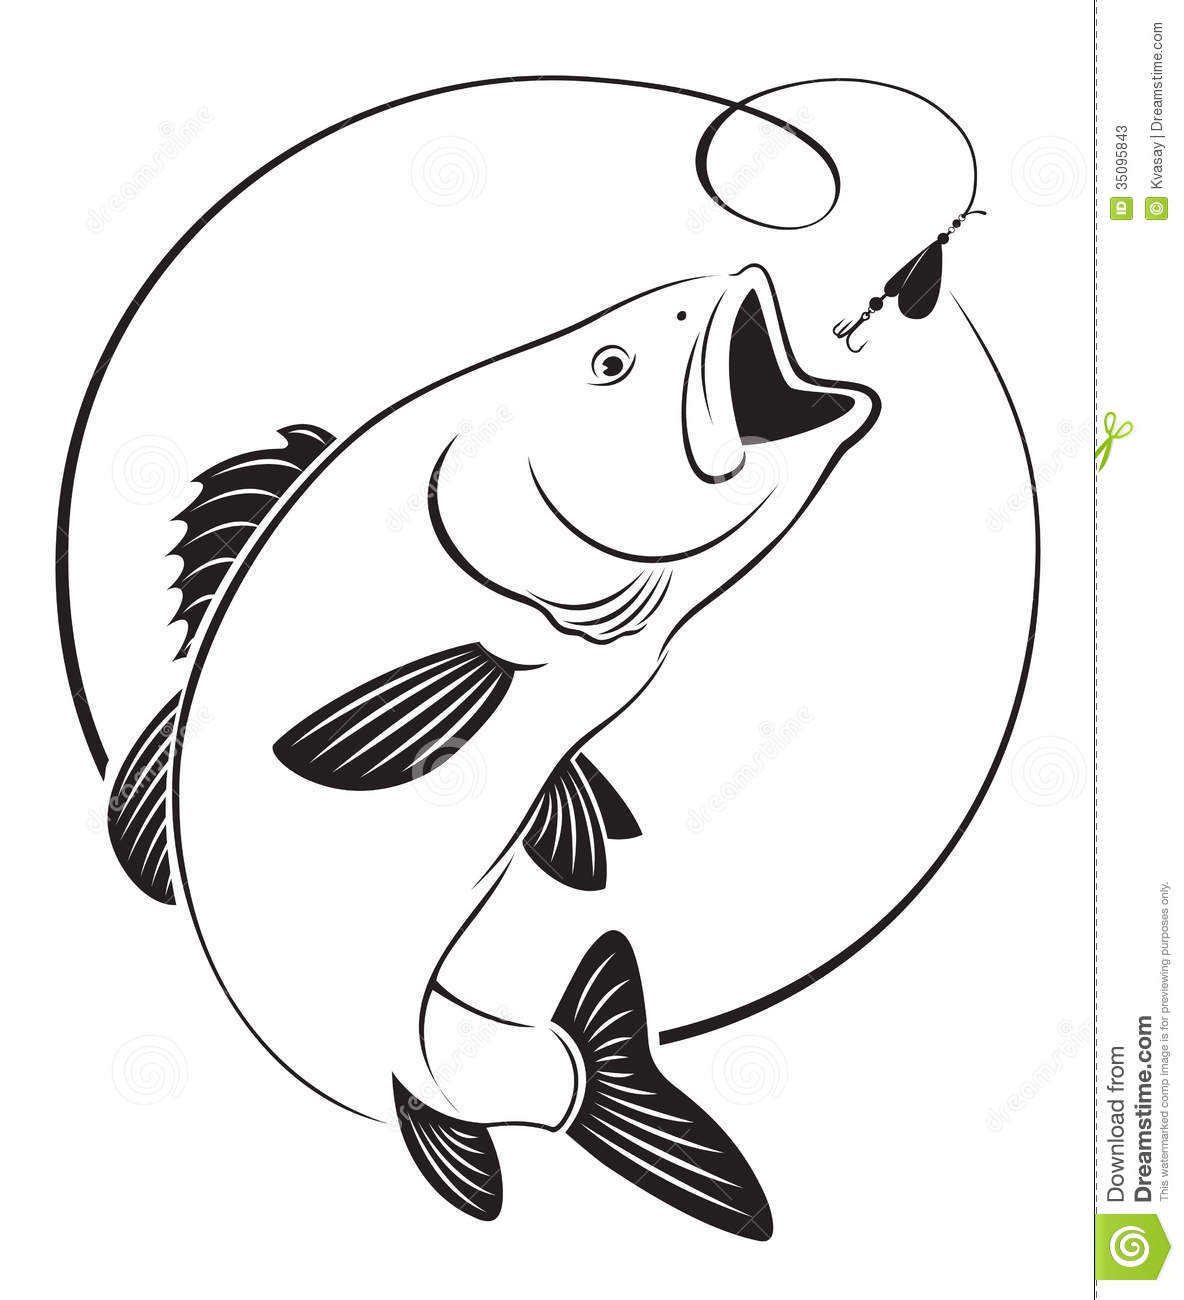 Fish bass stock vector. Illustration of sports, bass